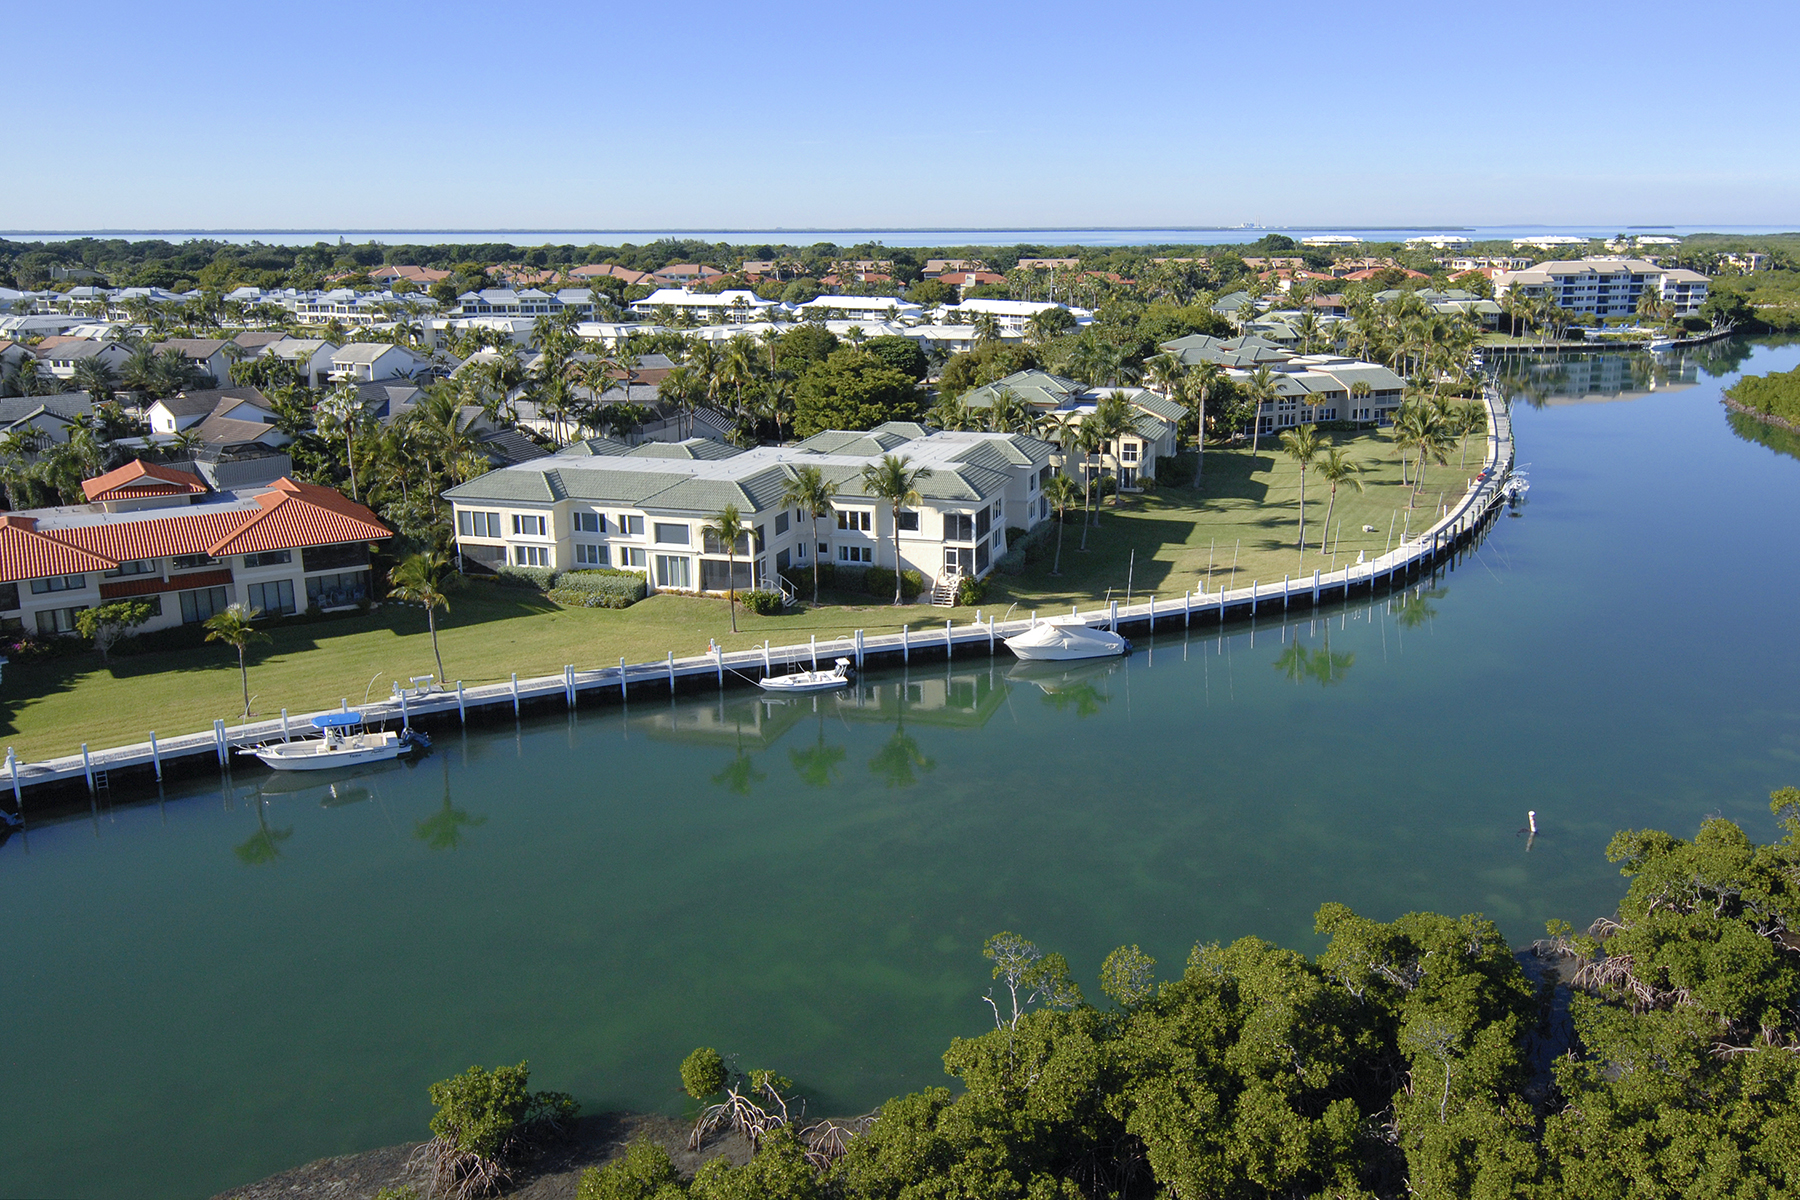 Condominium for Sale at Waterfront Condominium at Ocean Reef 41 Pumpkin Cay Road, Unit B Key Largo, Florida, 33037 United States